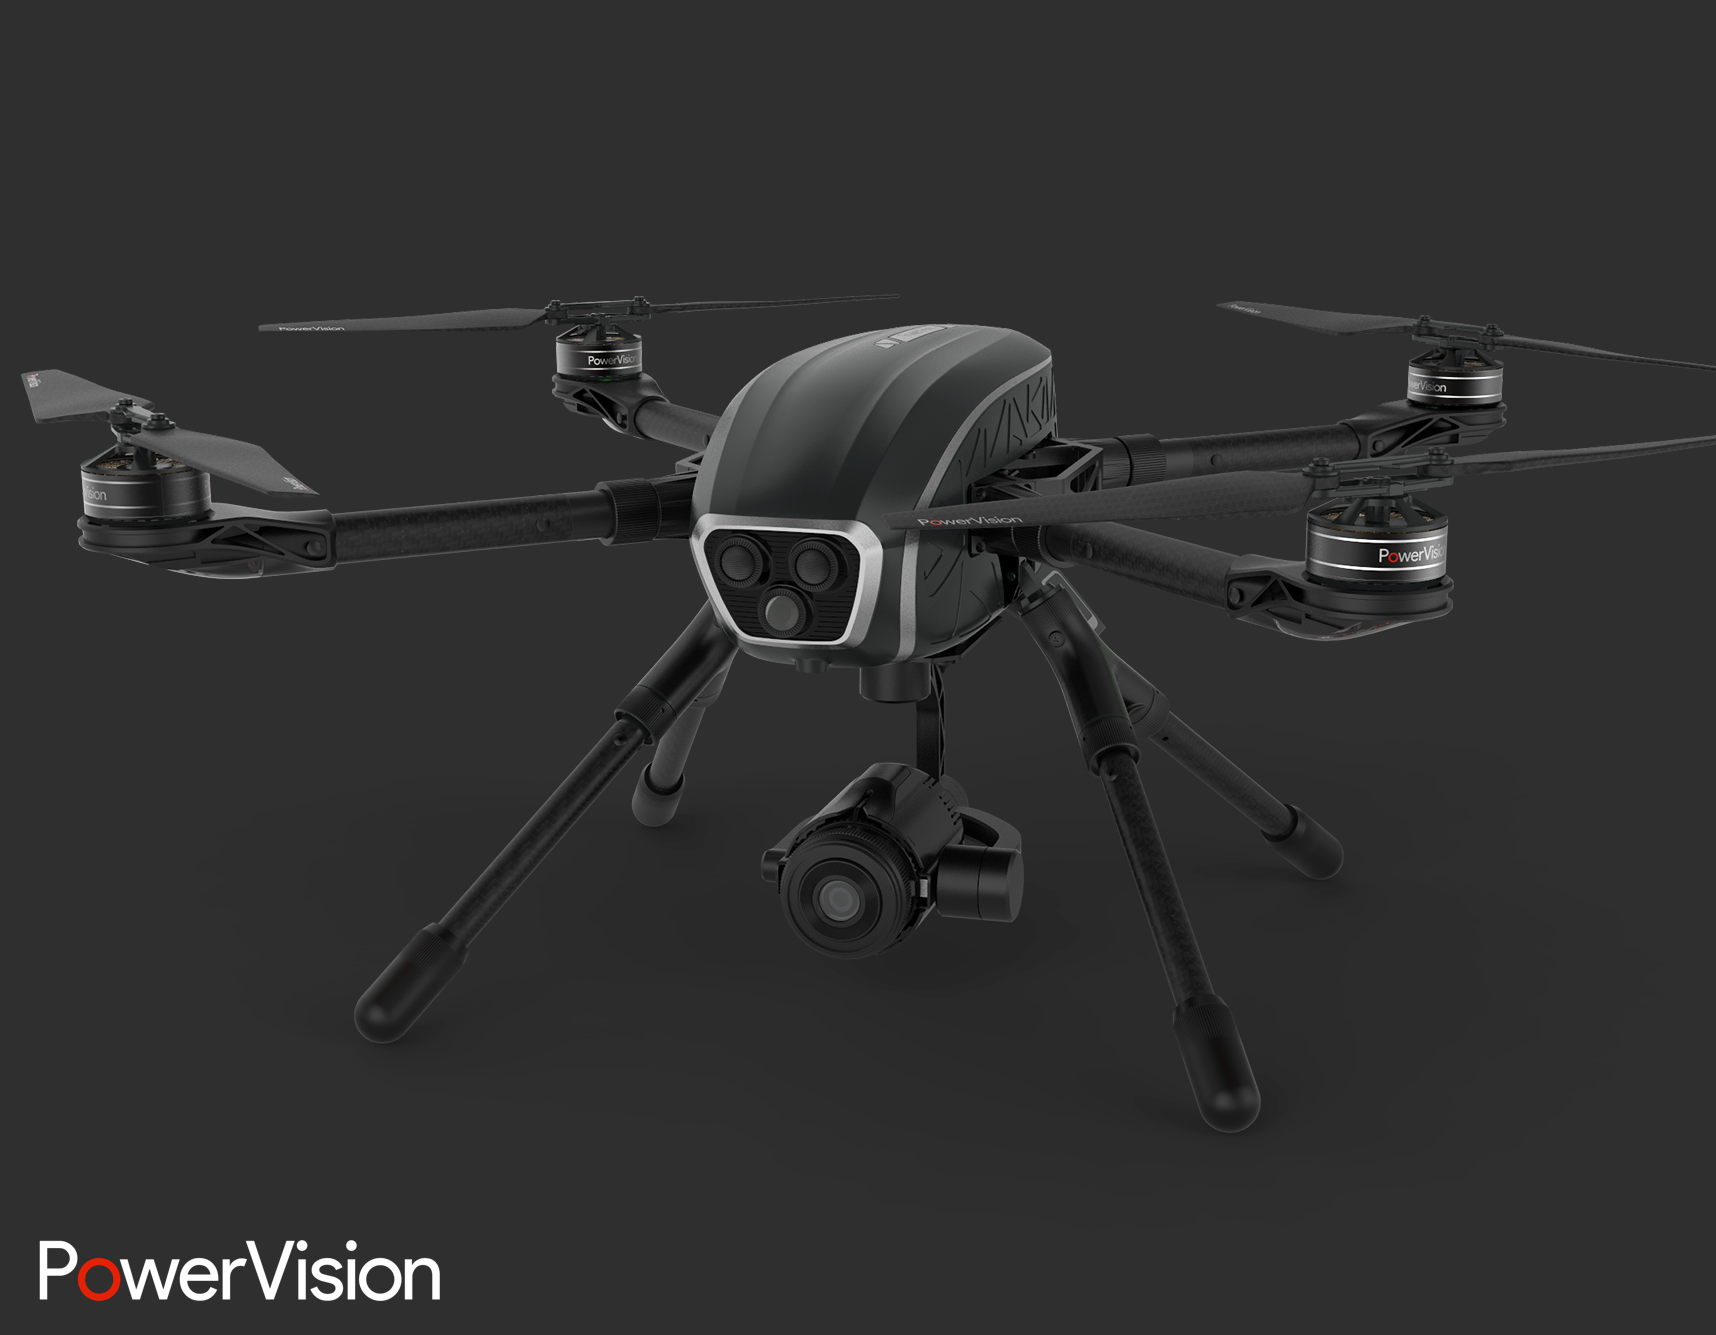 PowerVision Unveils PowerEye Cinematography Drone